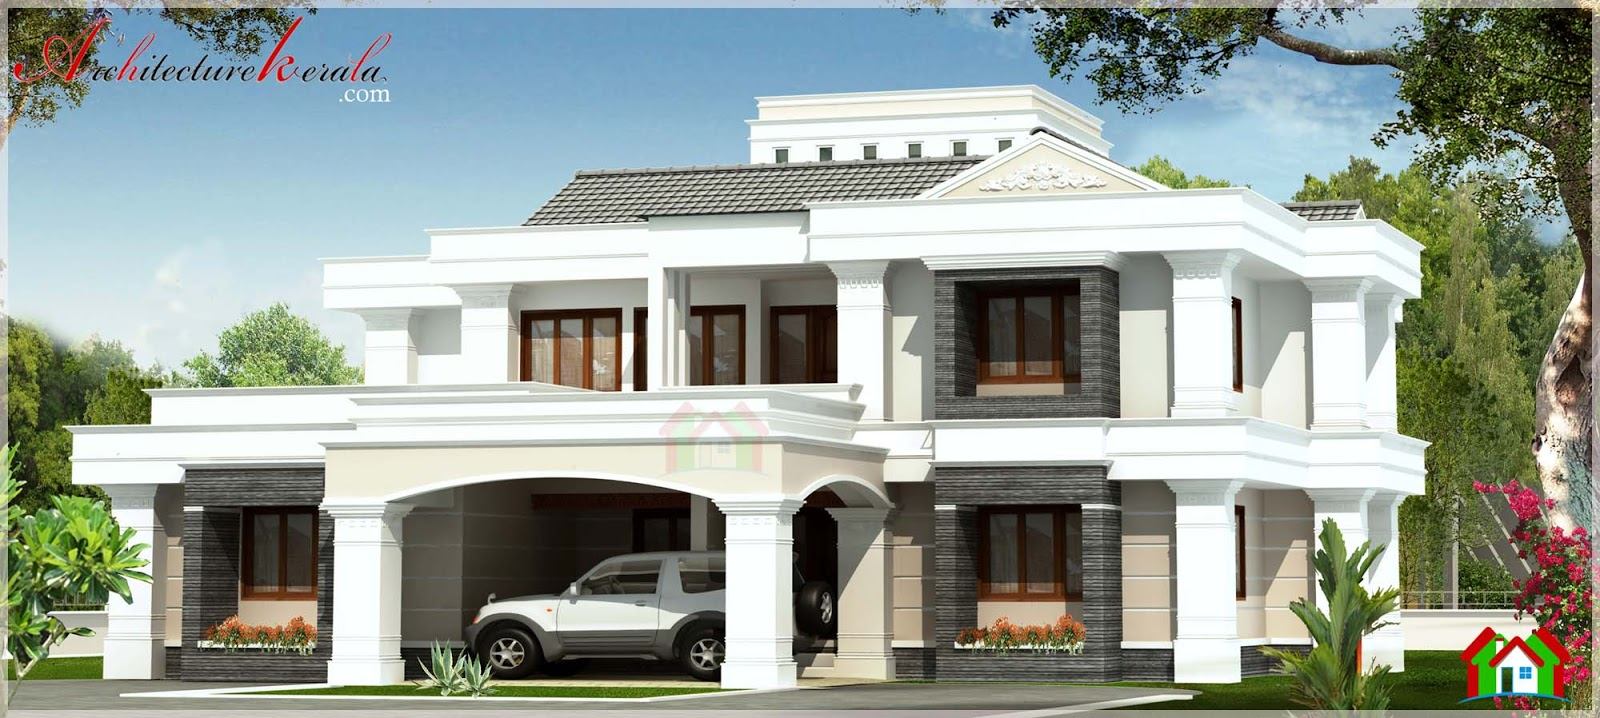 Modern House Elevation Plan : Kerala style modern house plans and elevations front design